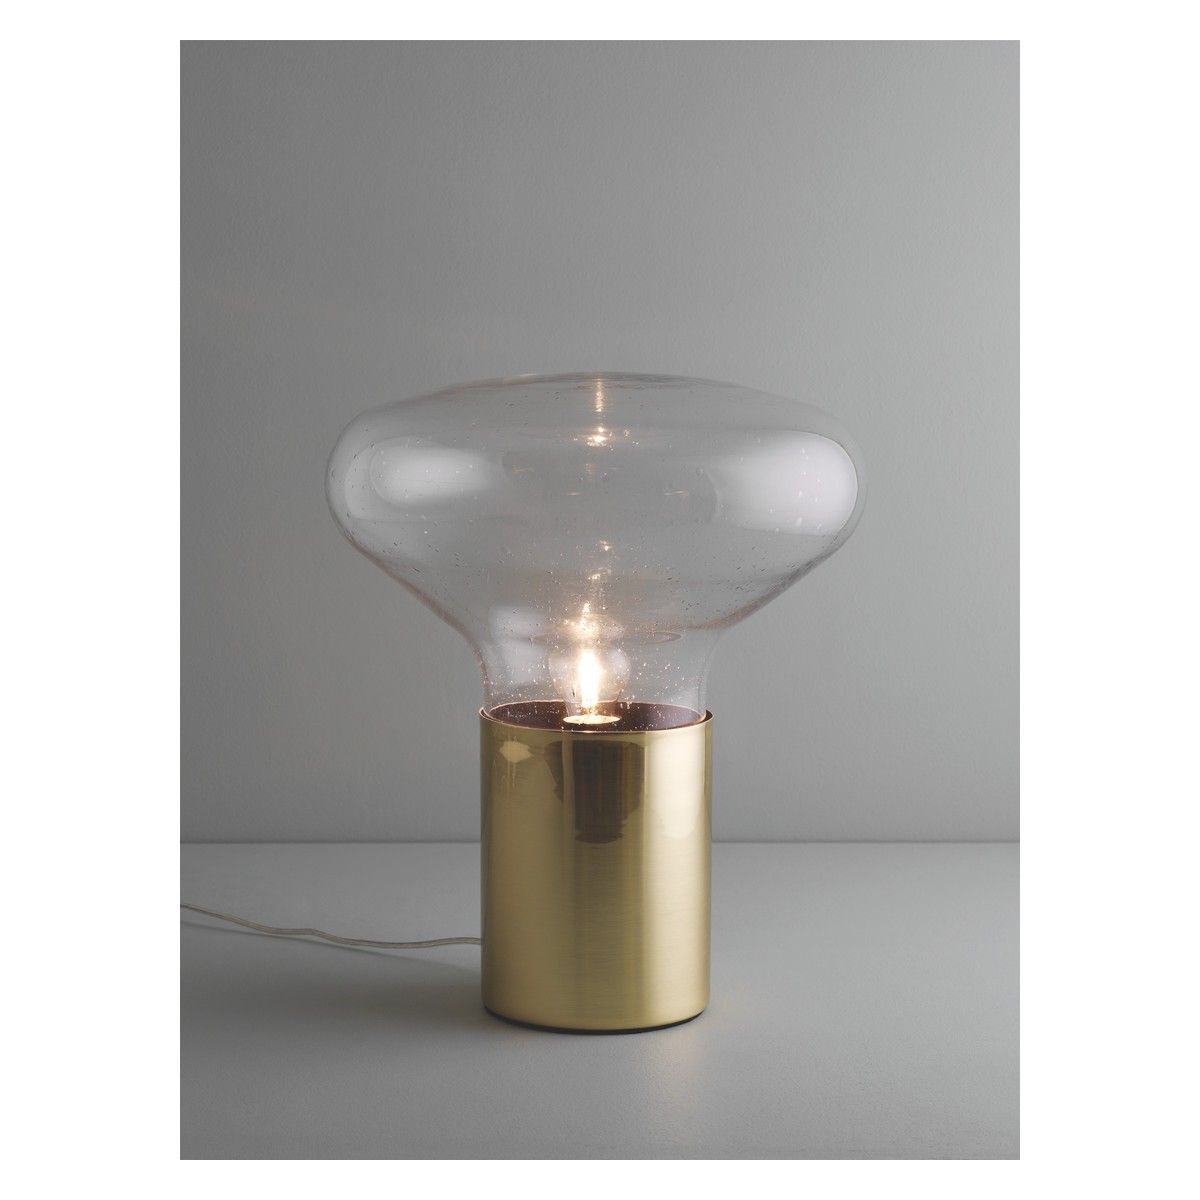 Marlowe bubble glass and metal touch table lamp touch table marlowe bubble glass and metal touch table lamp geotapseo Image collections